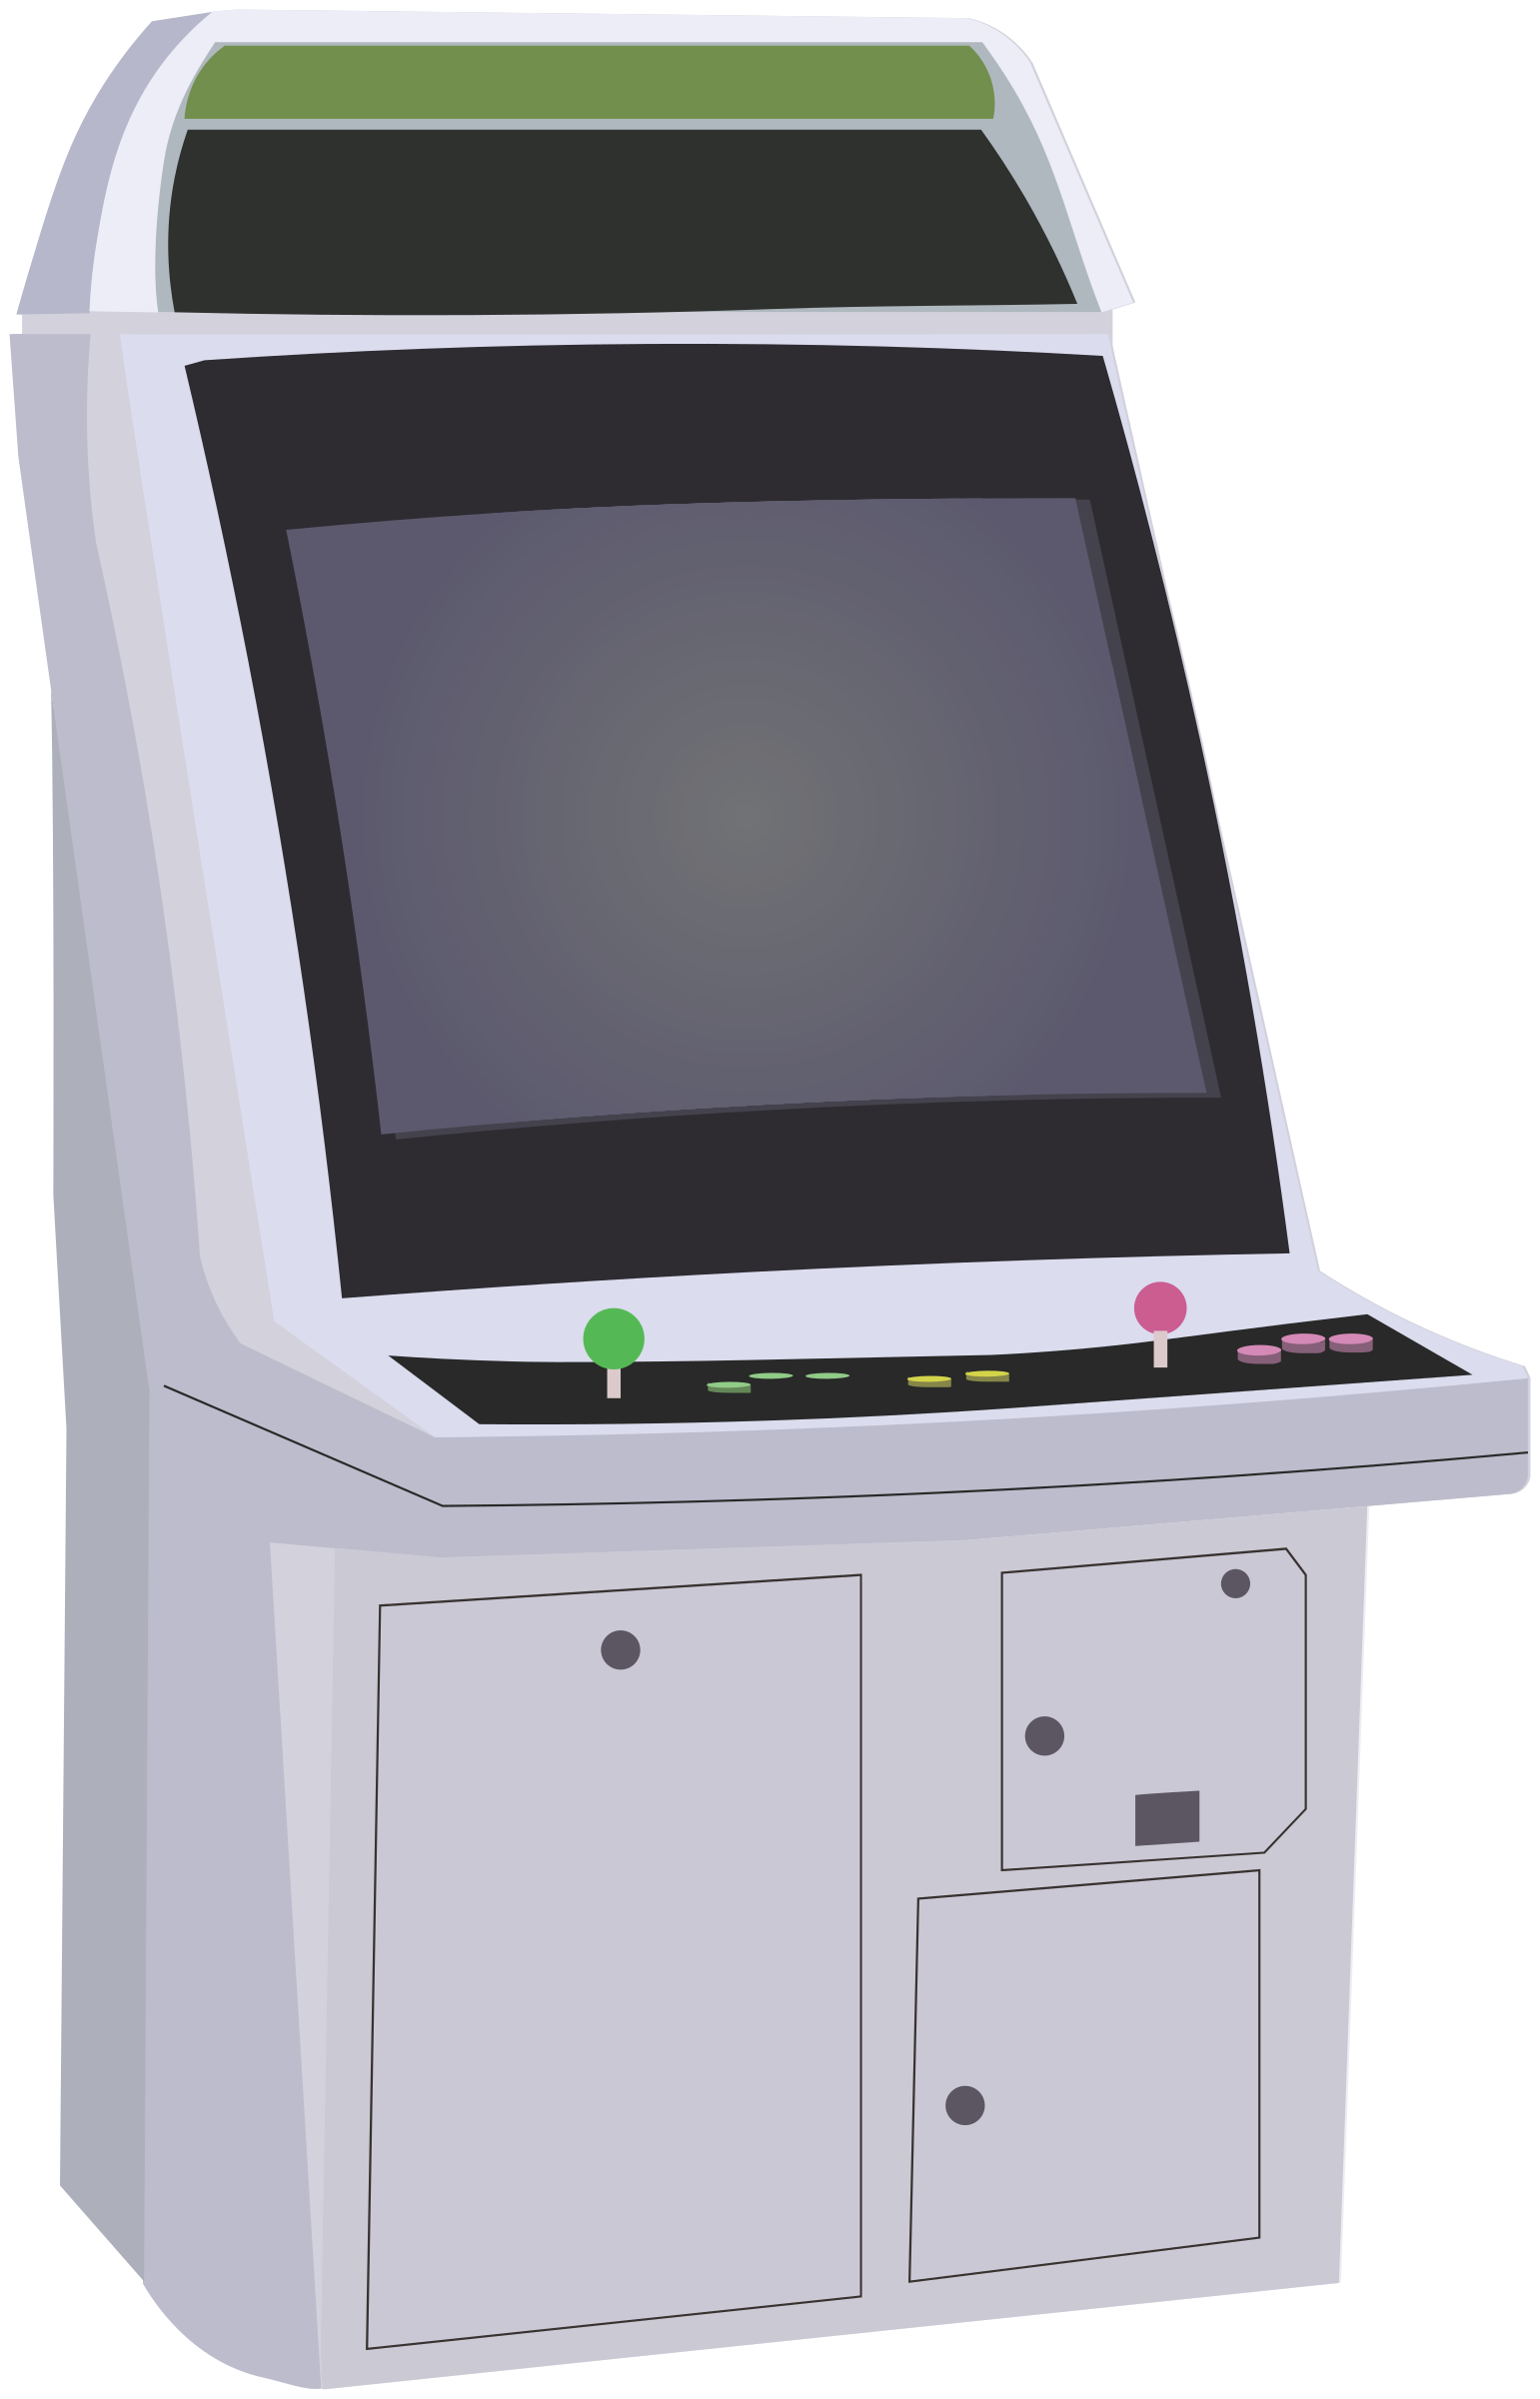 Video machine big image. Game clipart arcade